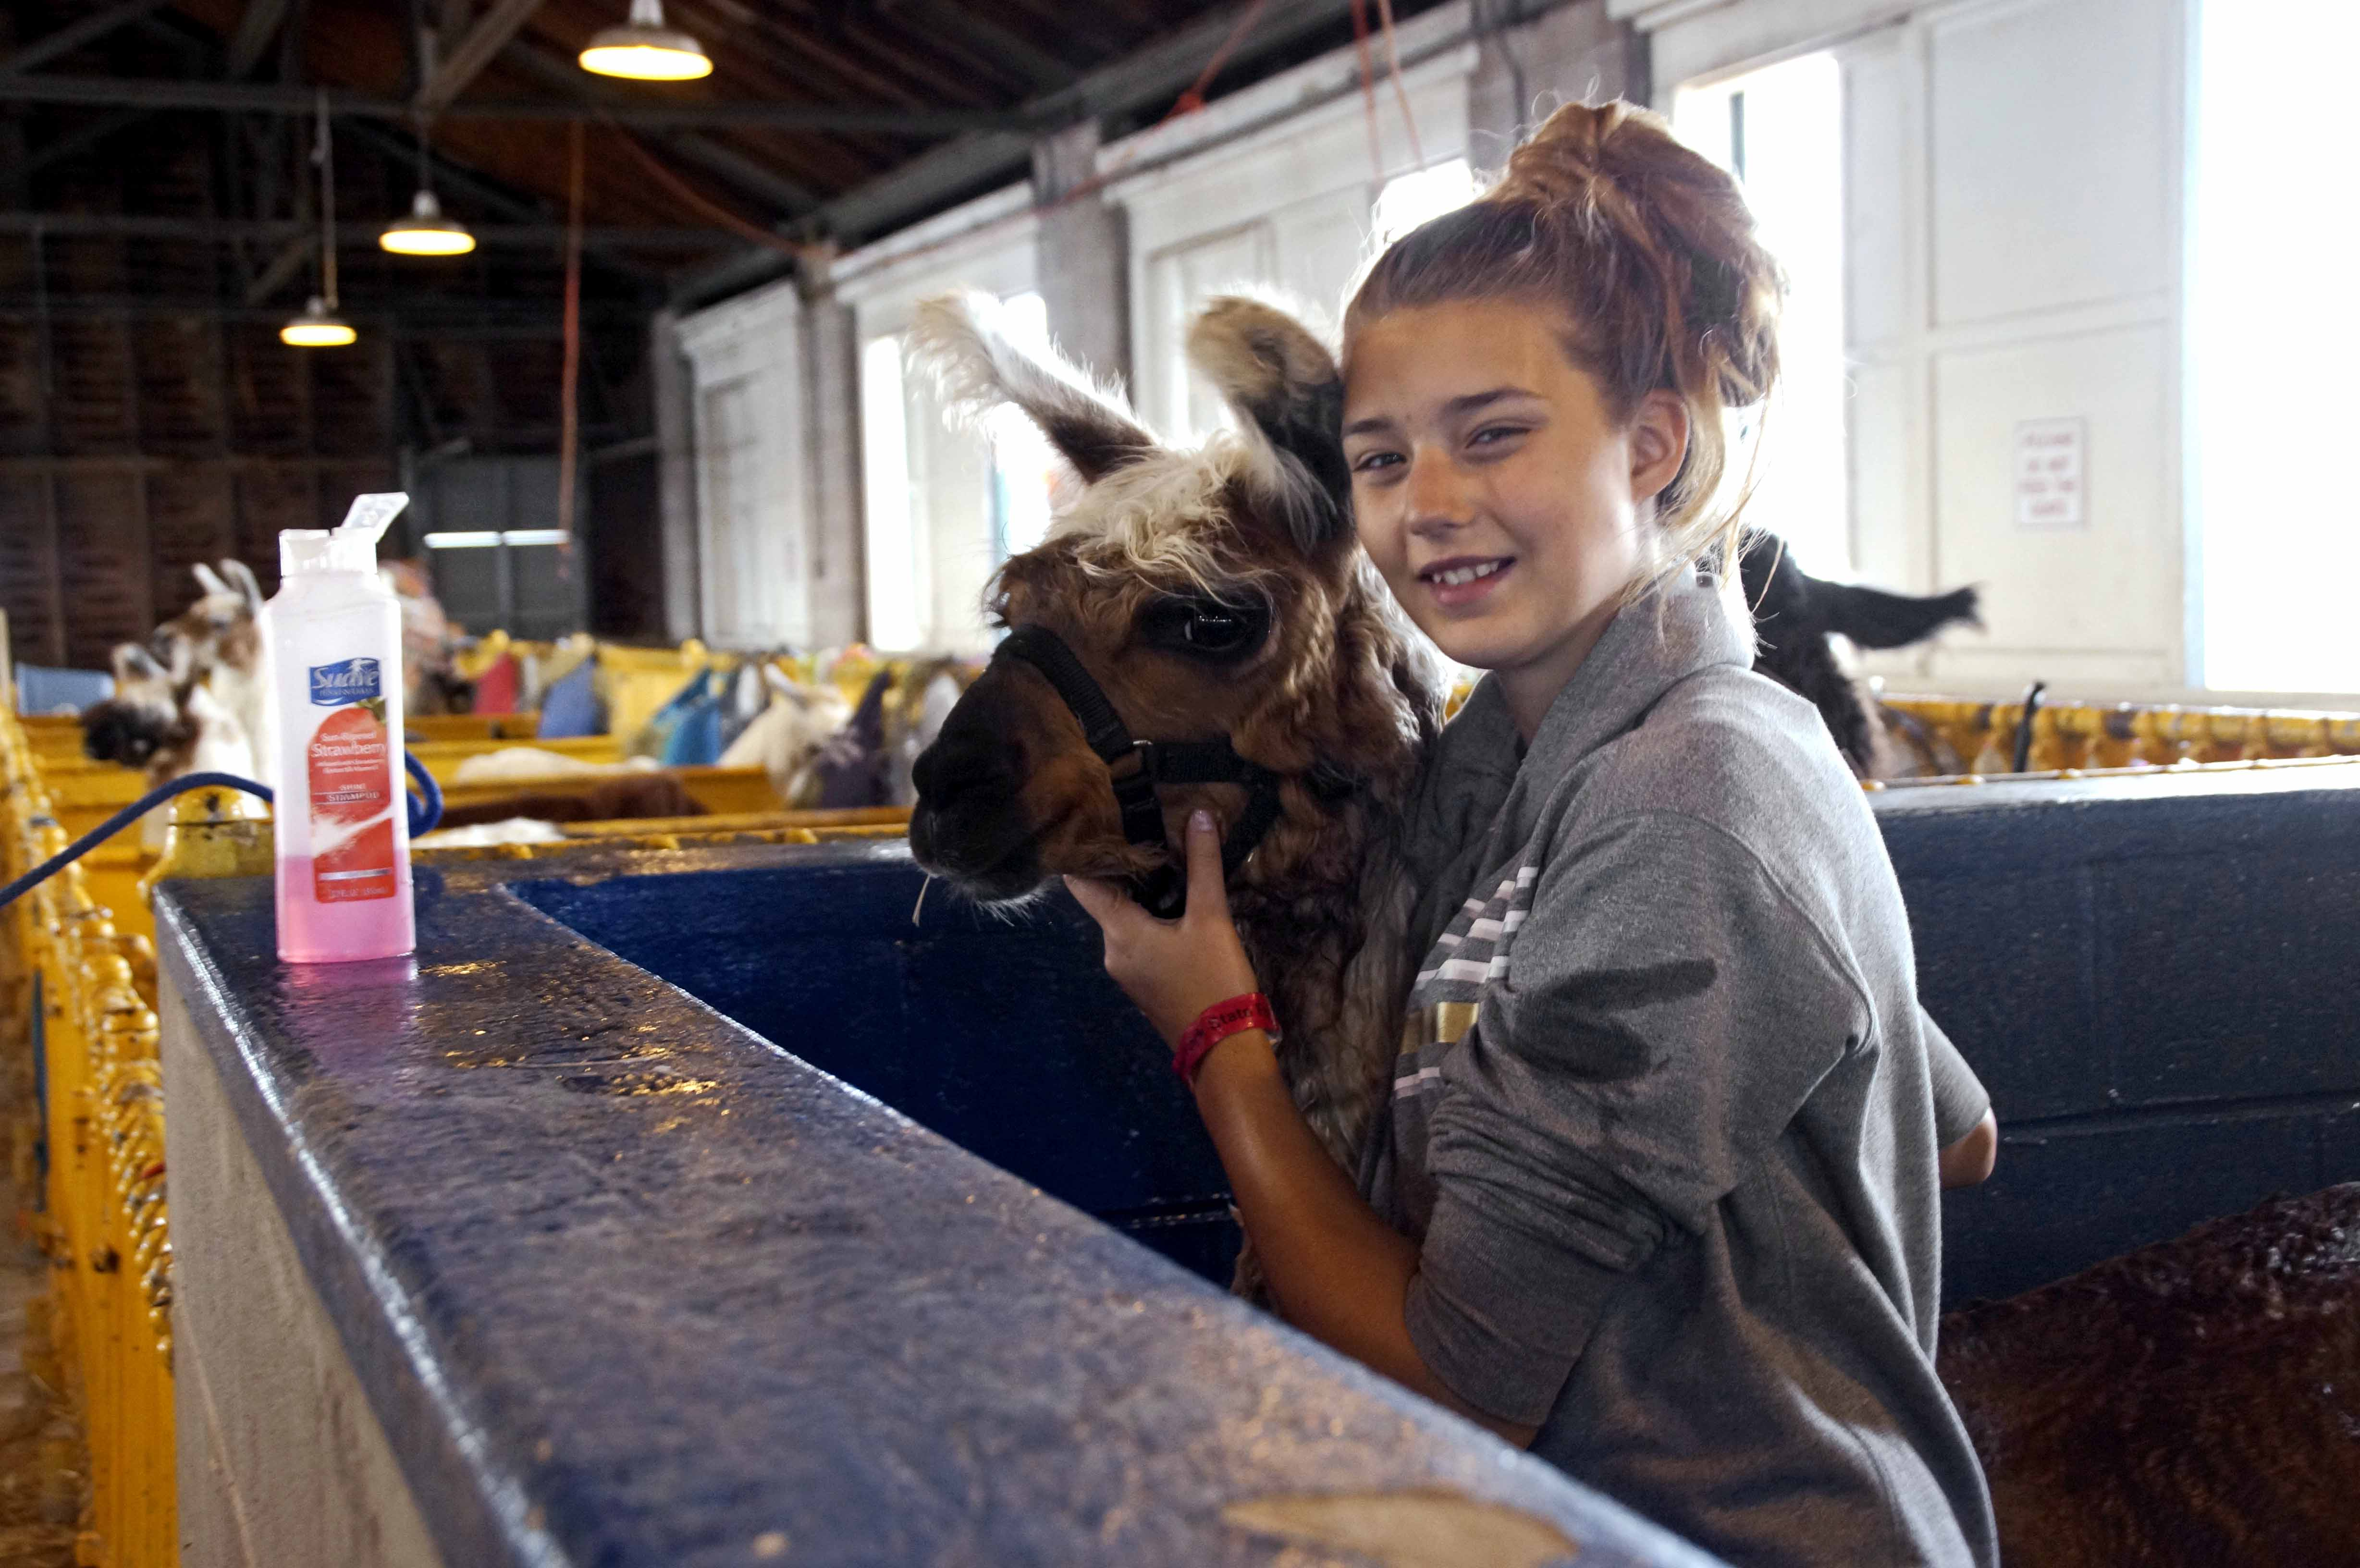 Hundreds of teens brought their hard work and unbridled enthusiasm to livestock competitions.